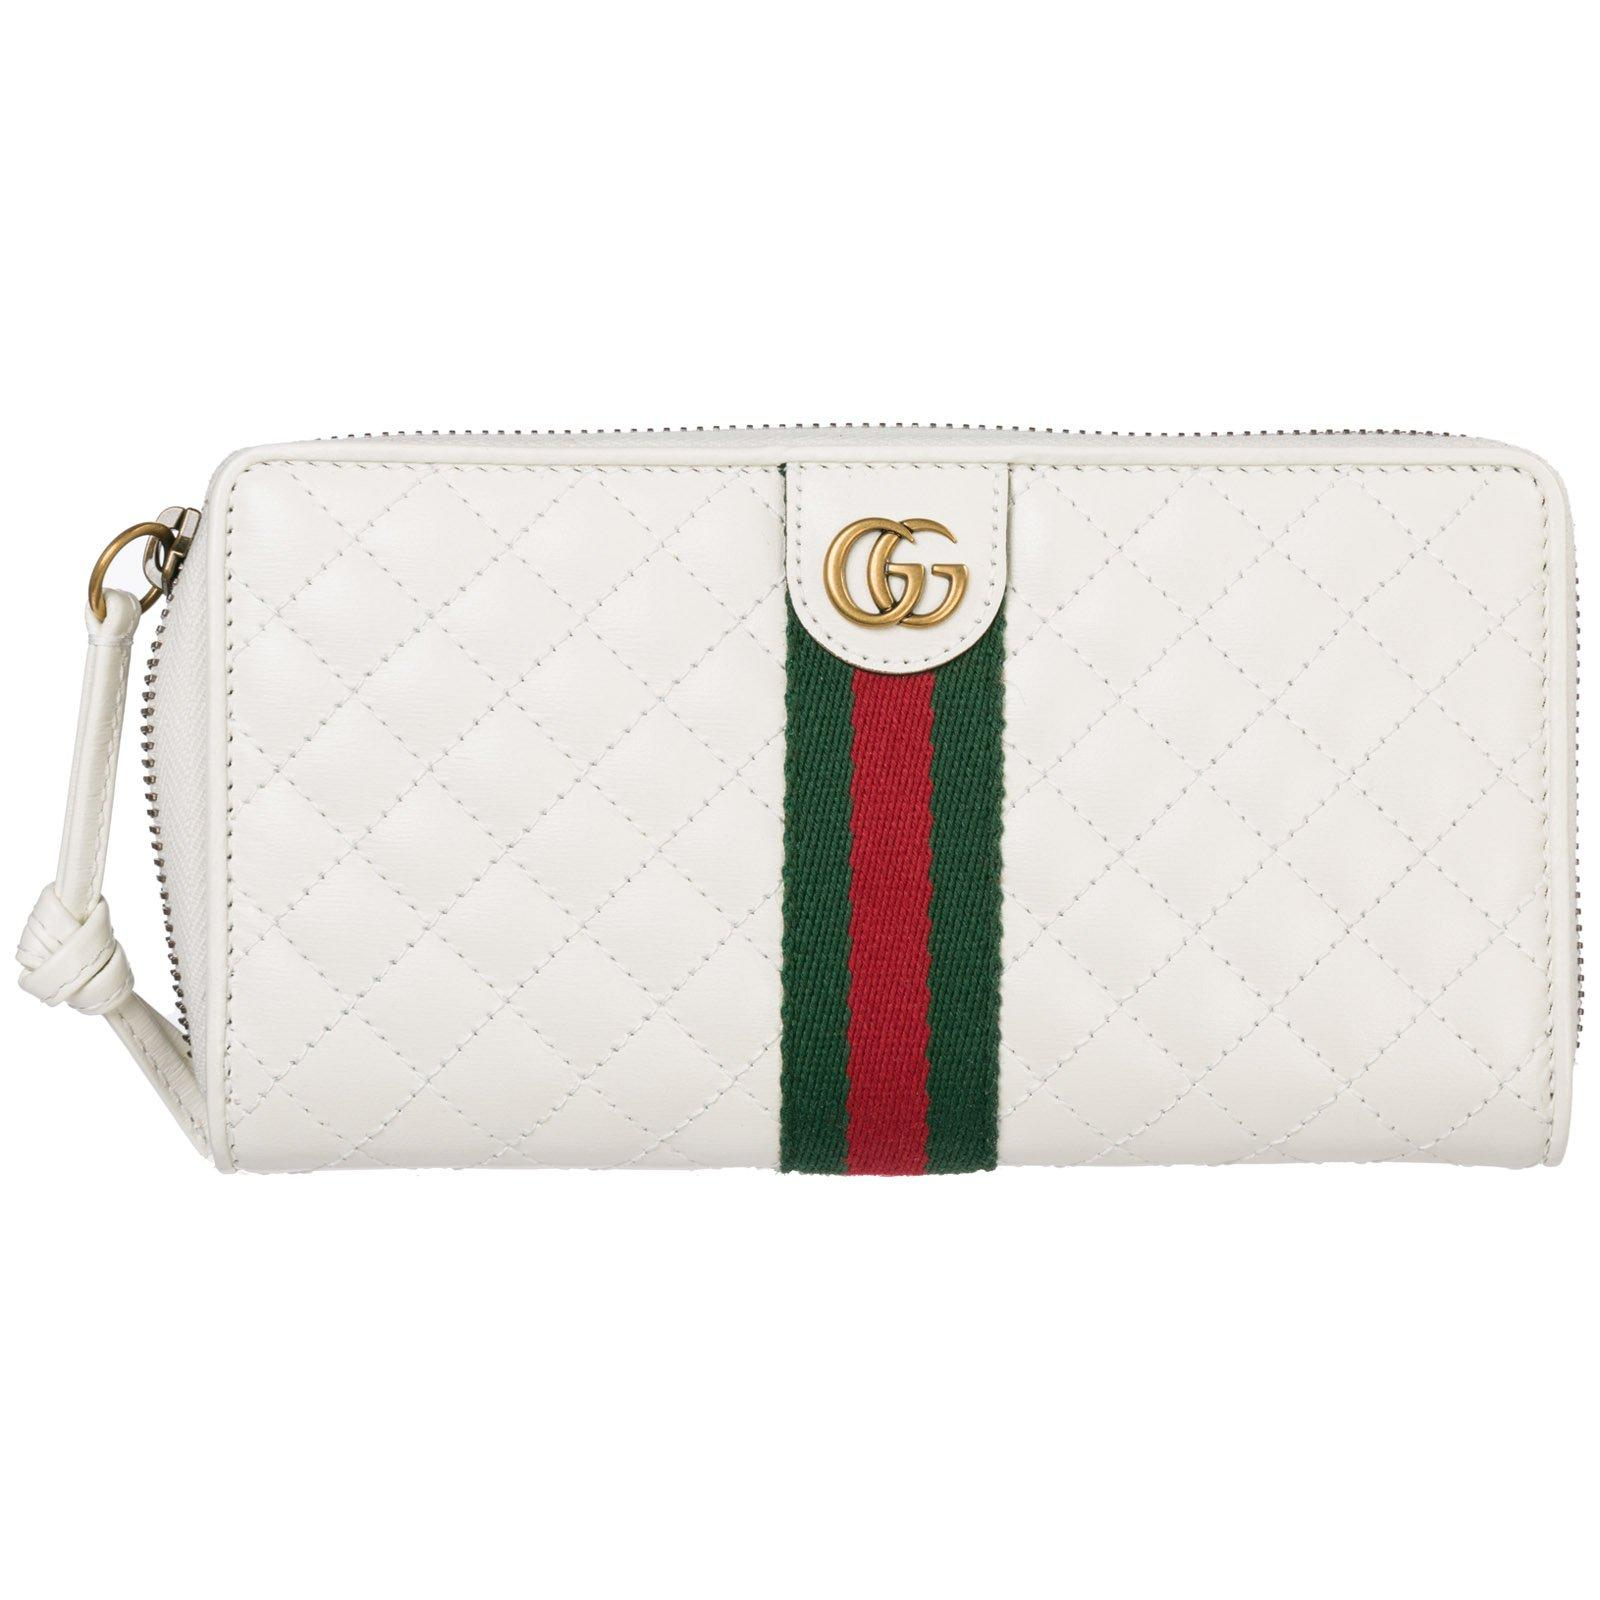 bd560e3674e340 Lyst - Gucci Double G Zip-around Wallet in White